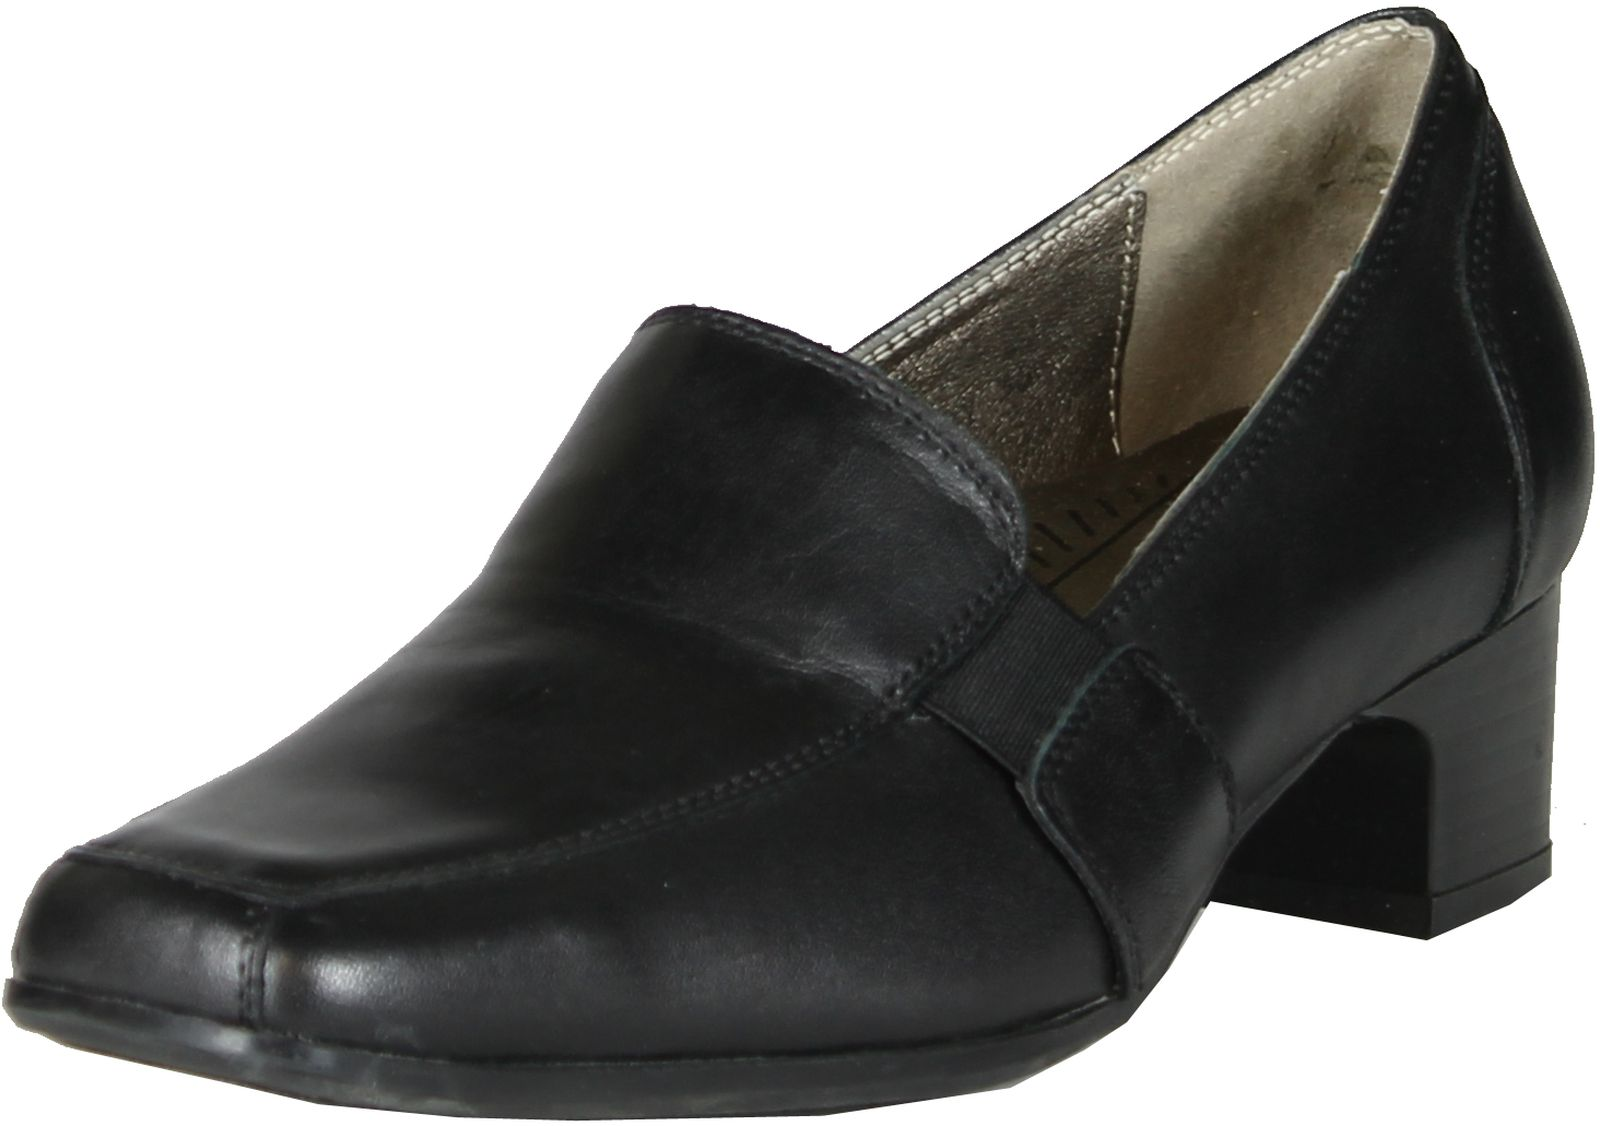 Spring Step Spring Step Womens Classy Leather Work Casual Pumps Shoes